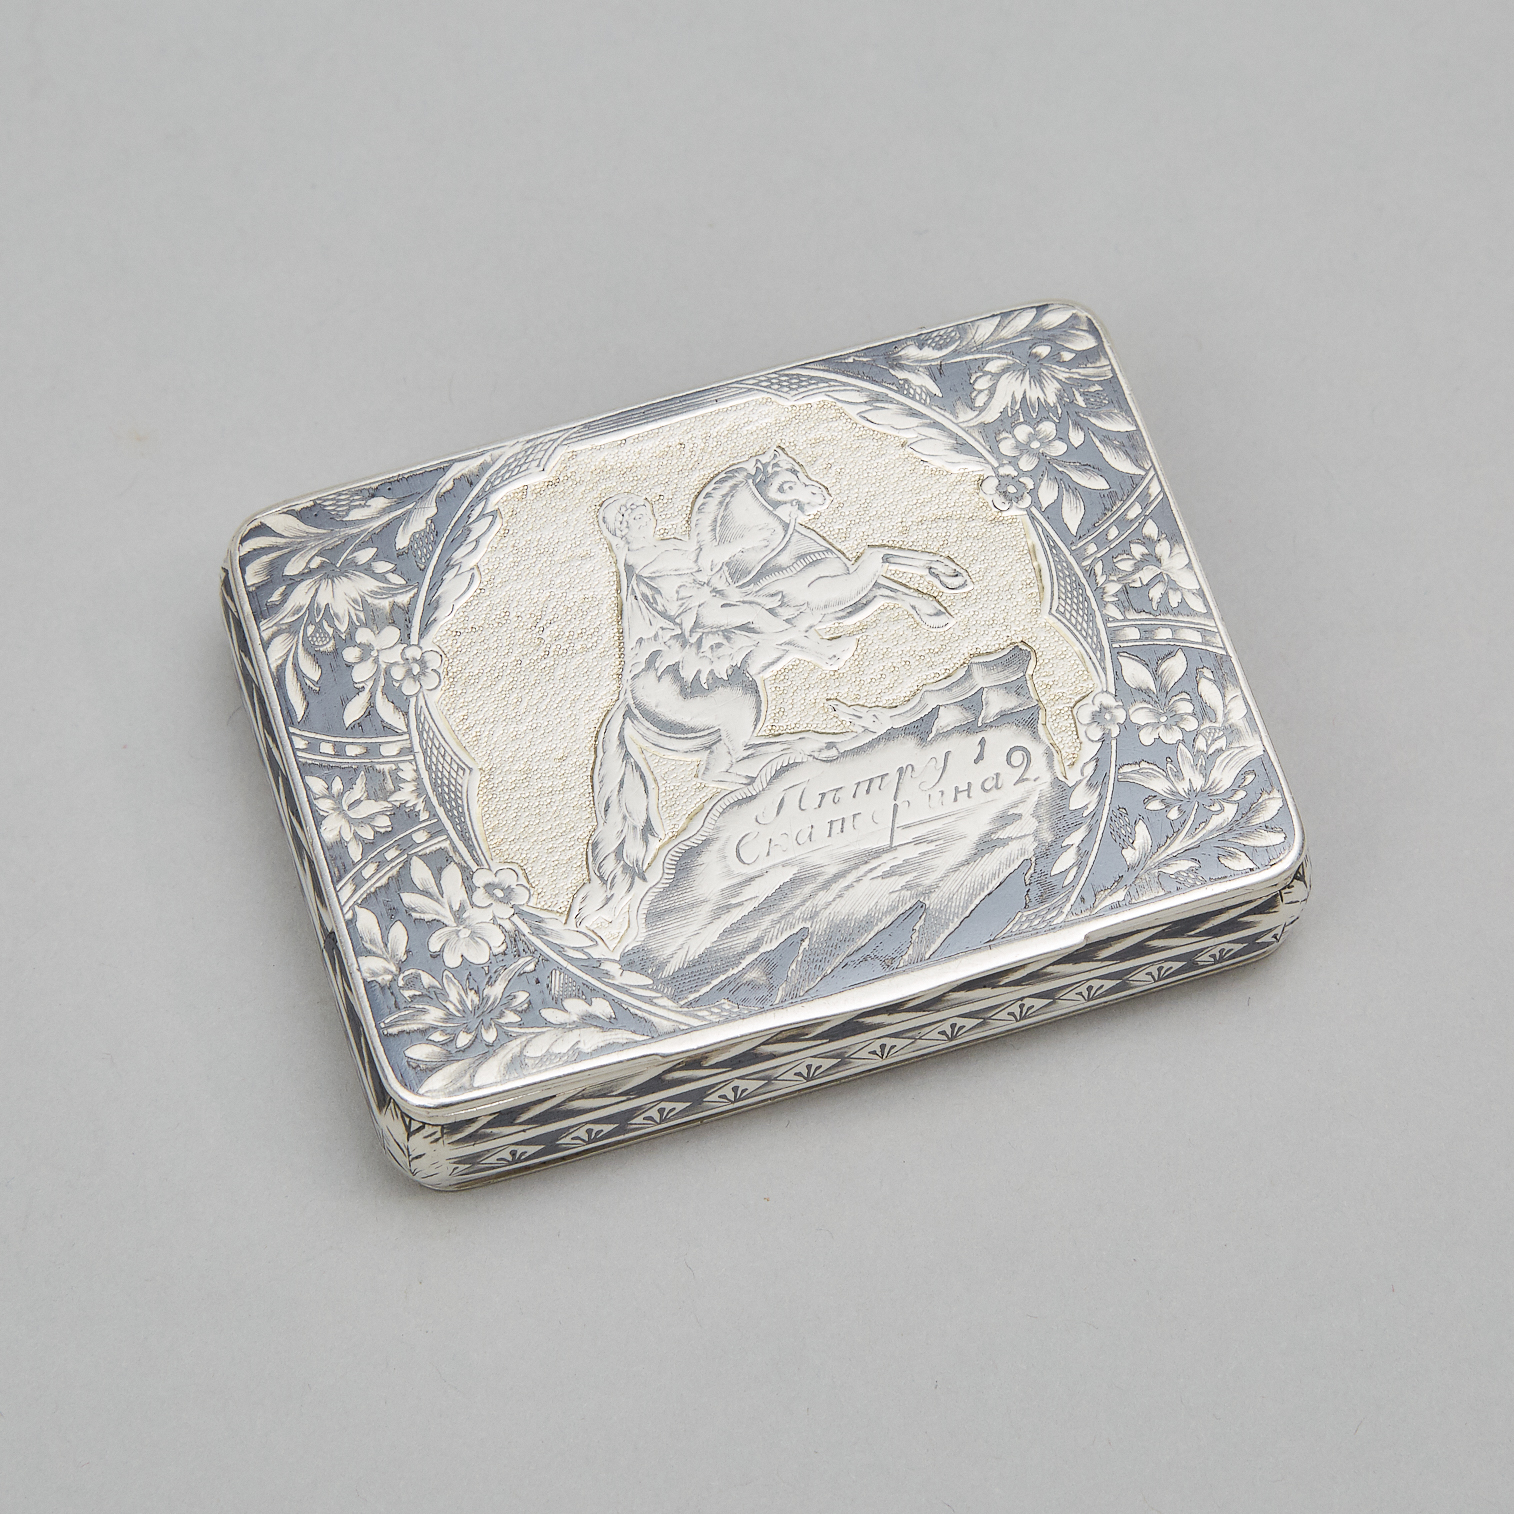 Russian Engraved and Nielloed Silver Rectangular Snuff Box, Moscow, 1824